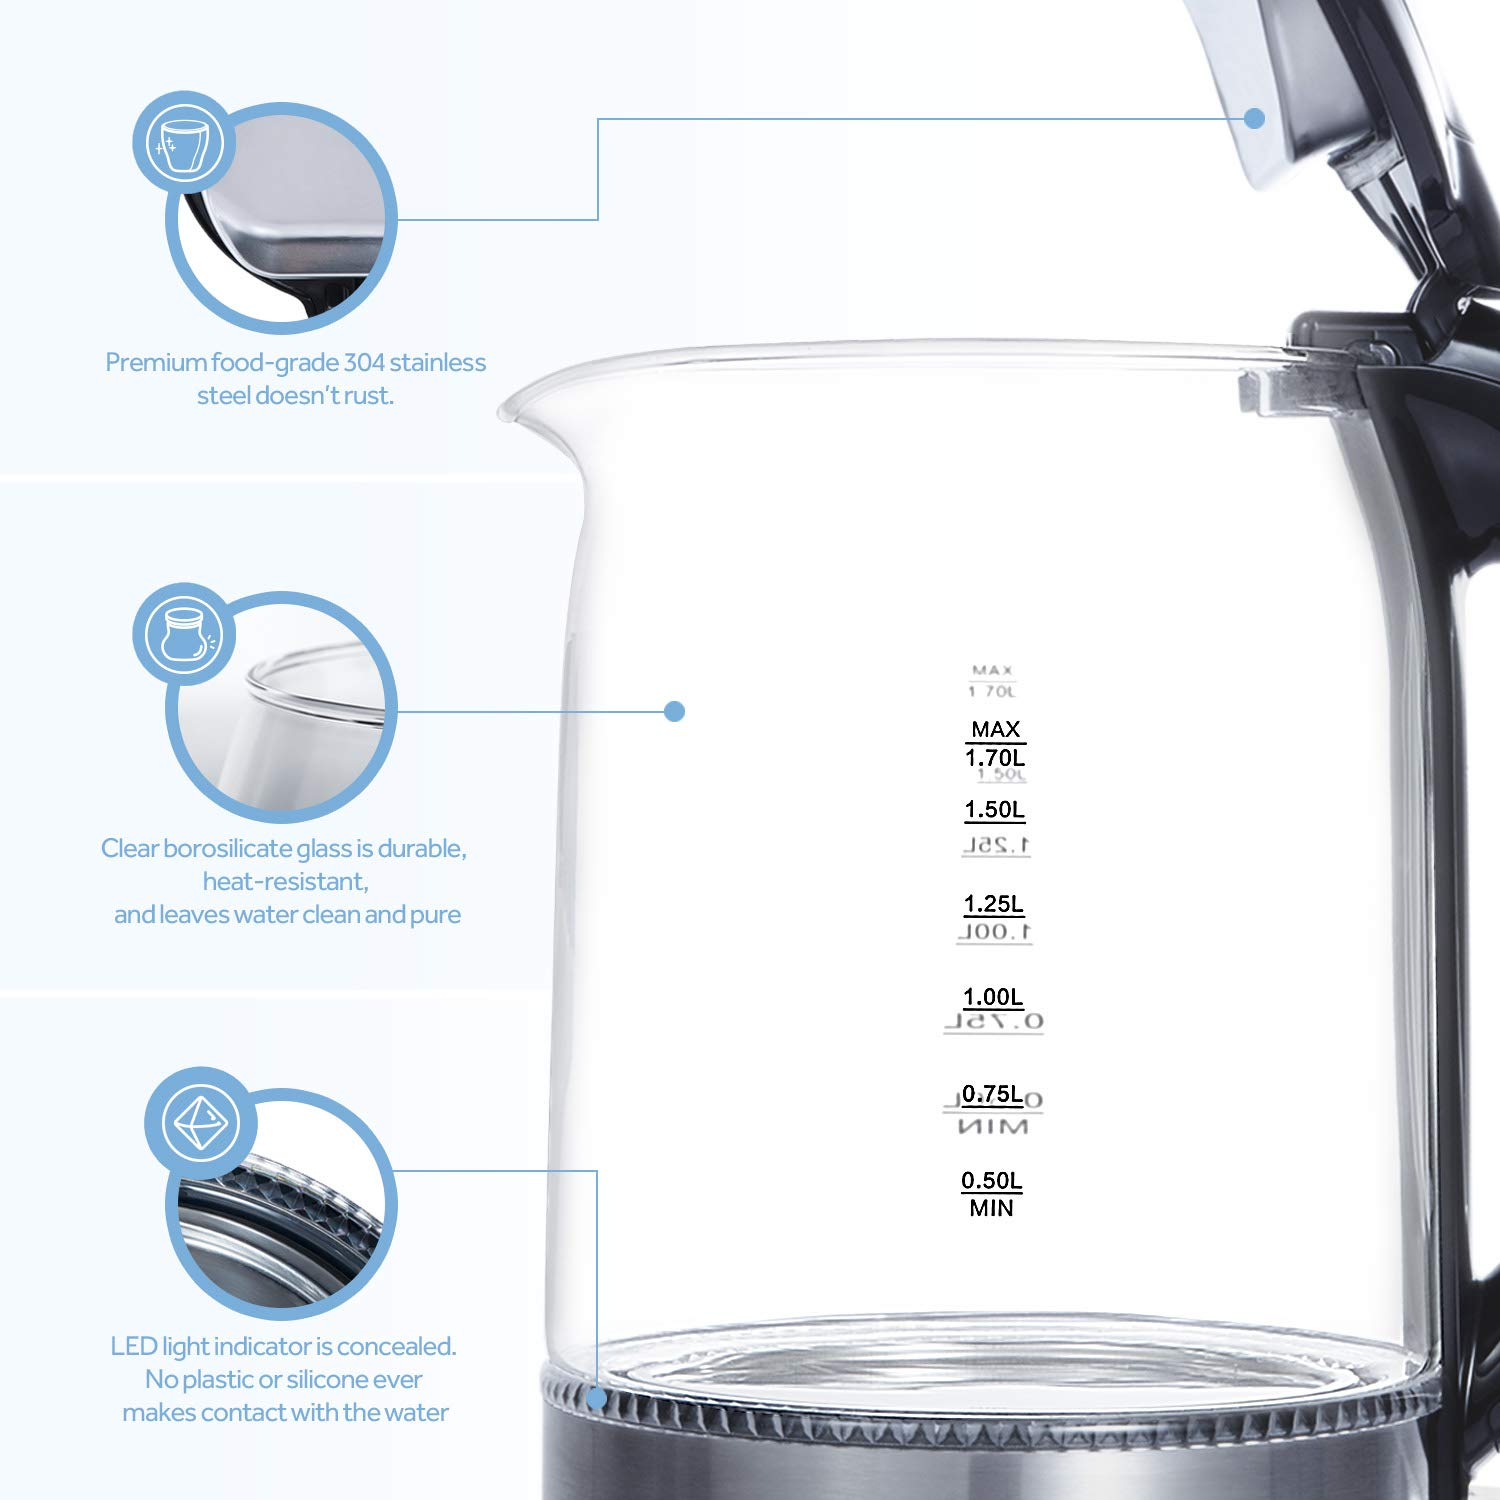 COSORI 1.7L Electric Kettle(BPA-Free), Cordless Glass Boiler,Coffee Pot,Water & Tea Heater with LED Indicator,Auto Shut-Off & Boil-Dry Protection,100% Stainless Steel Inner Lid & Bottom,1500W,CO171-GK by COSORI (Image #5)